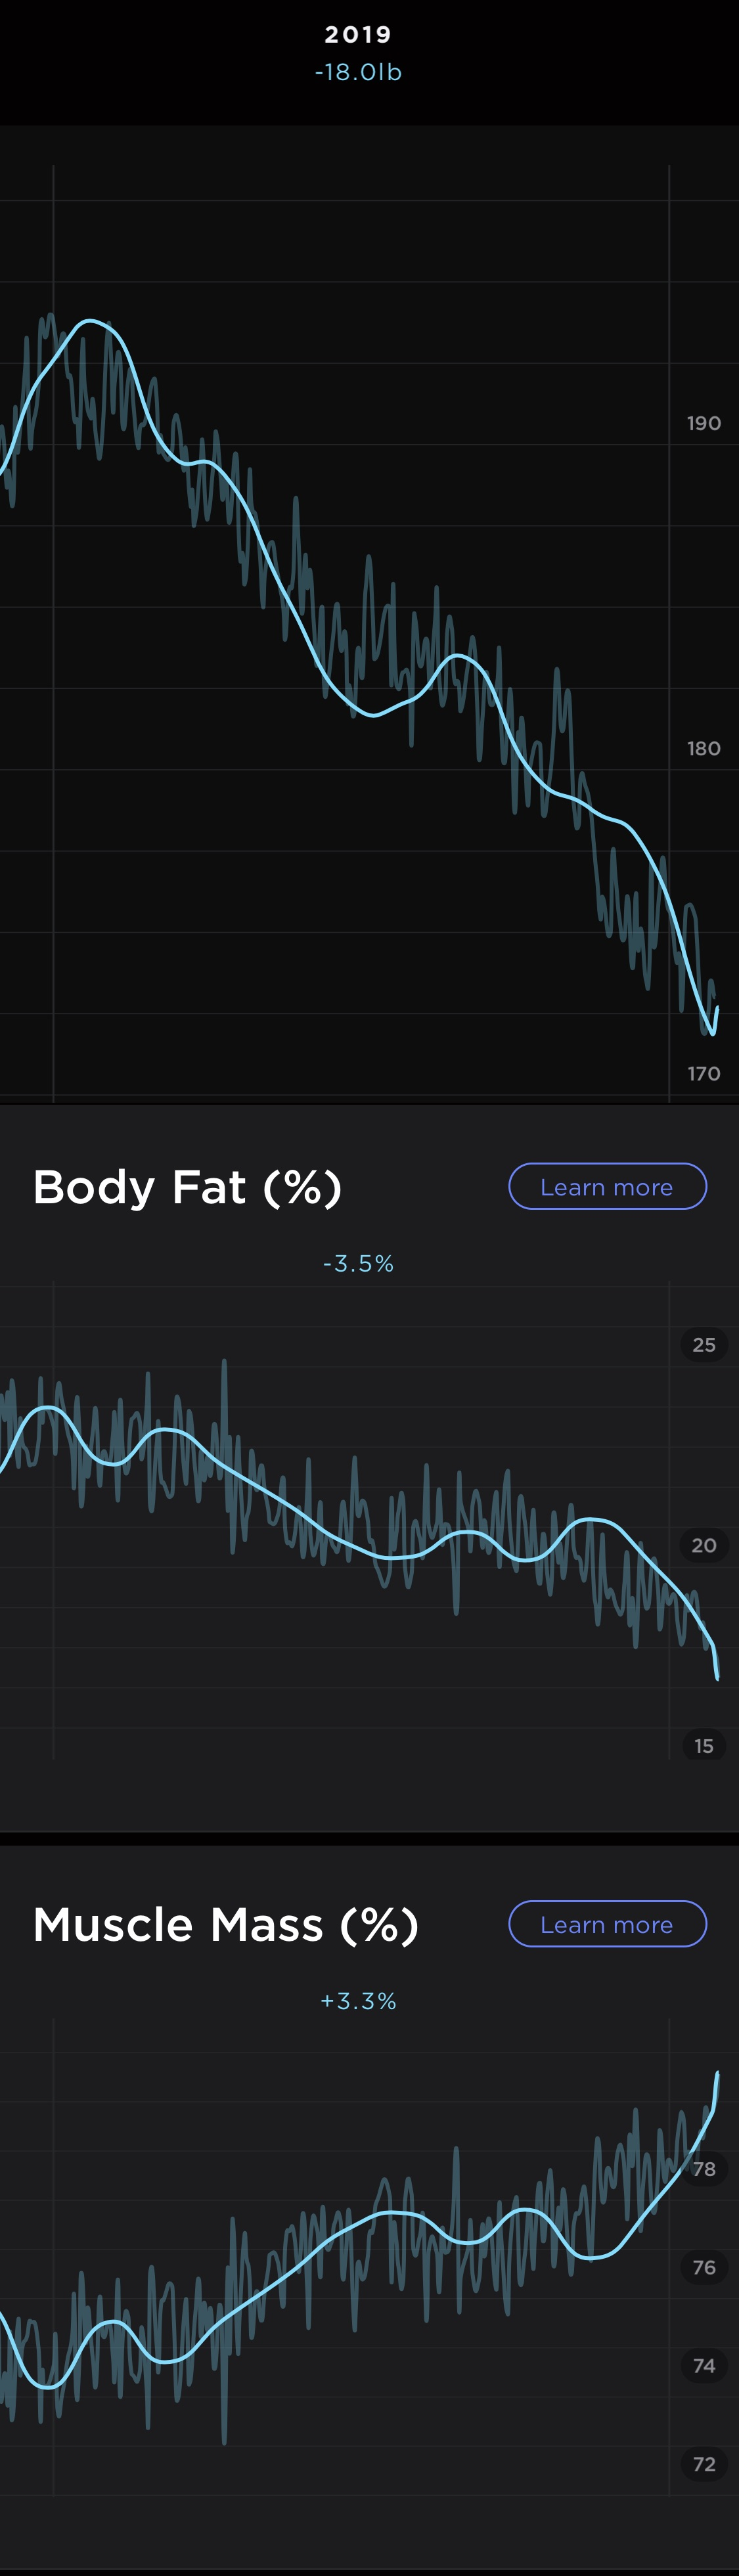 Weight down 20 lbs, Body fat down about 3.8%, Muscle Mass up about 3.5%